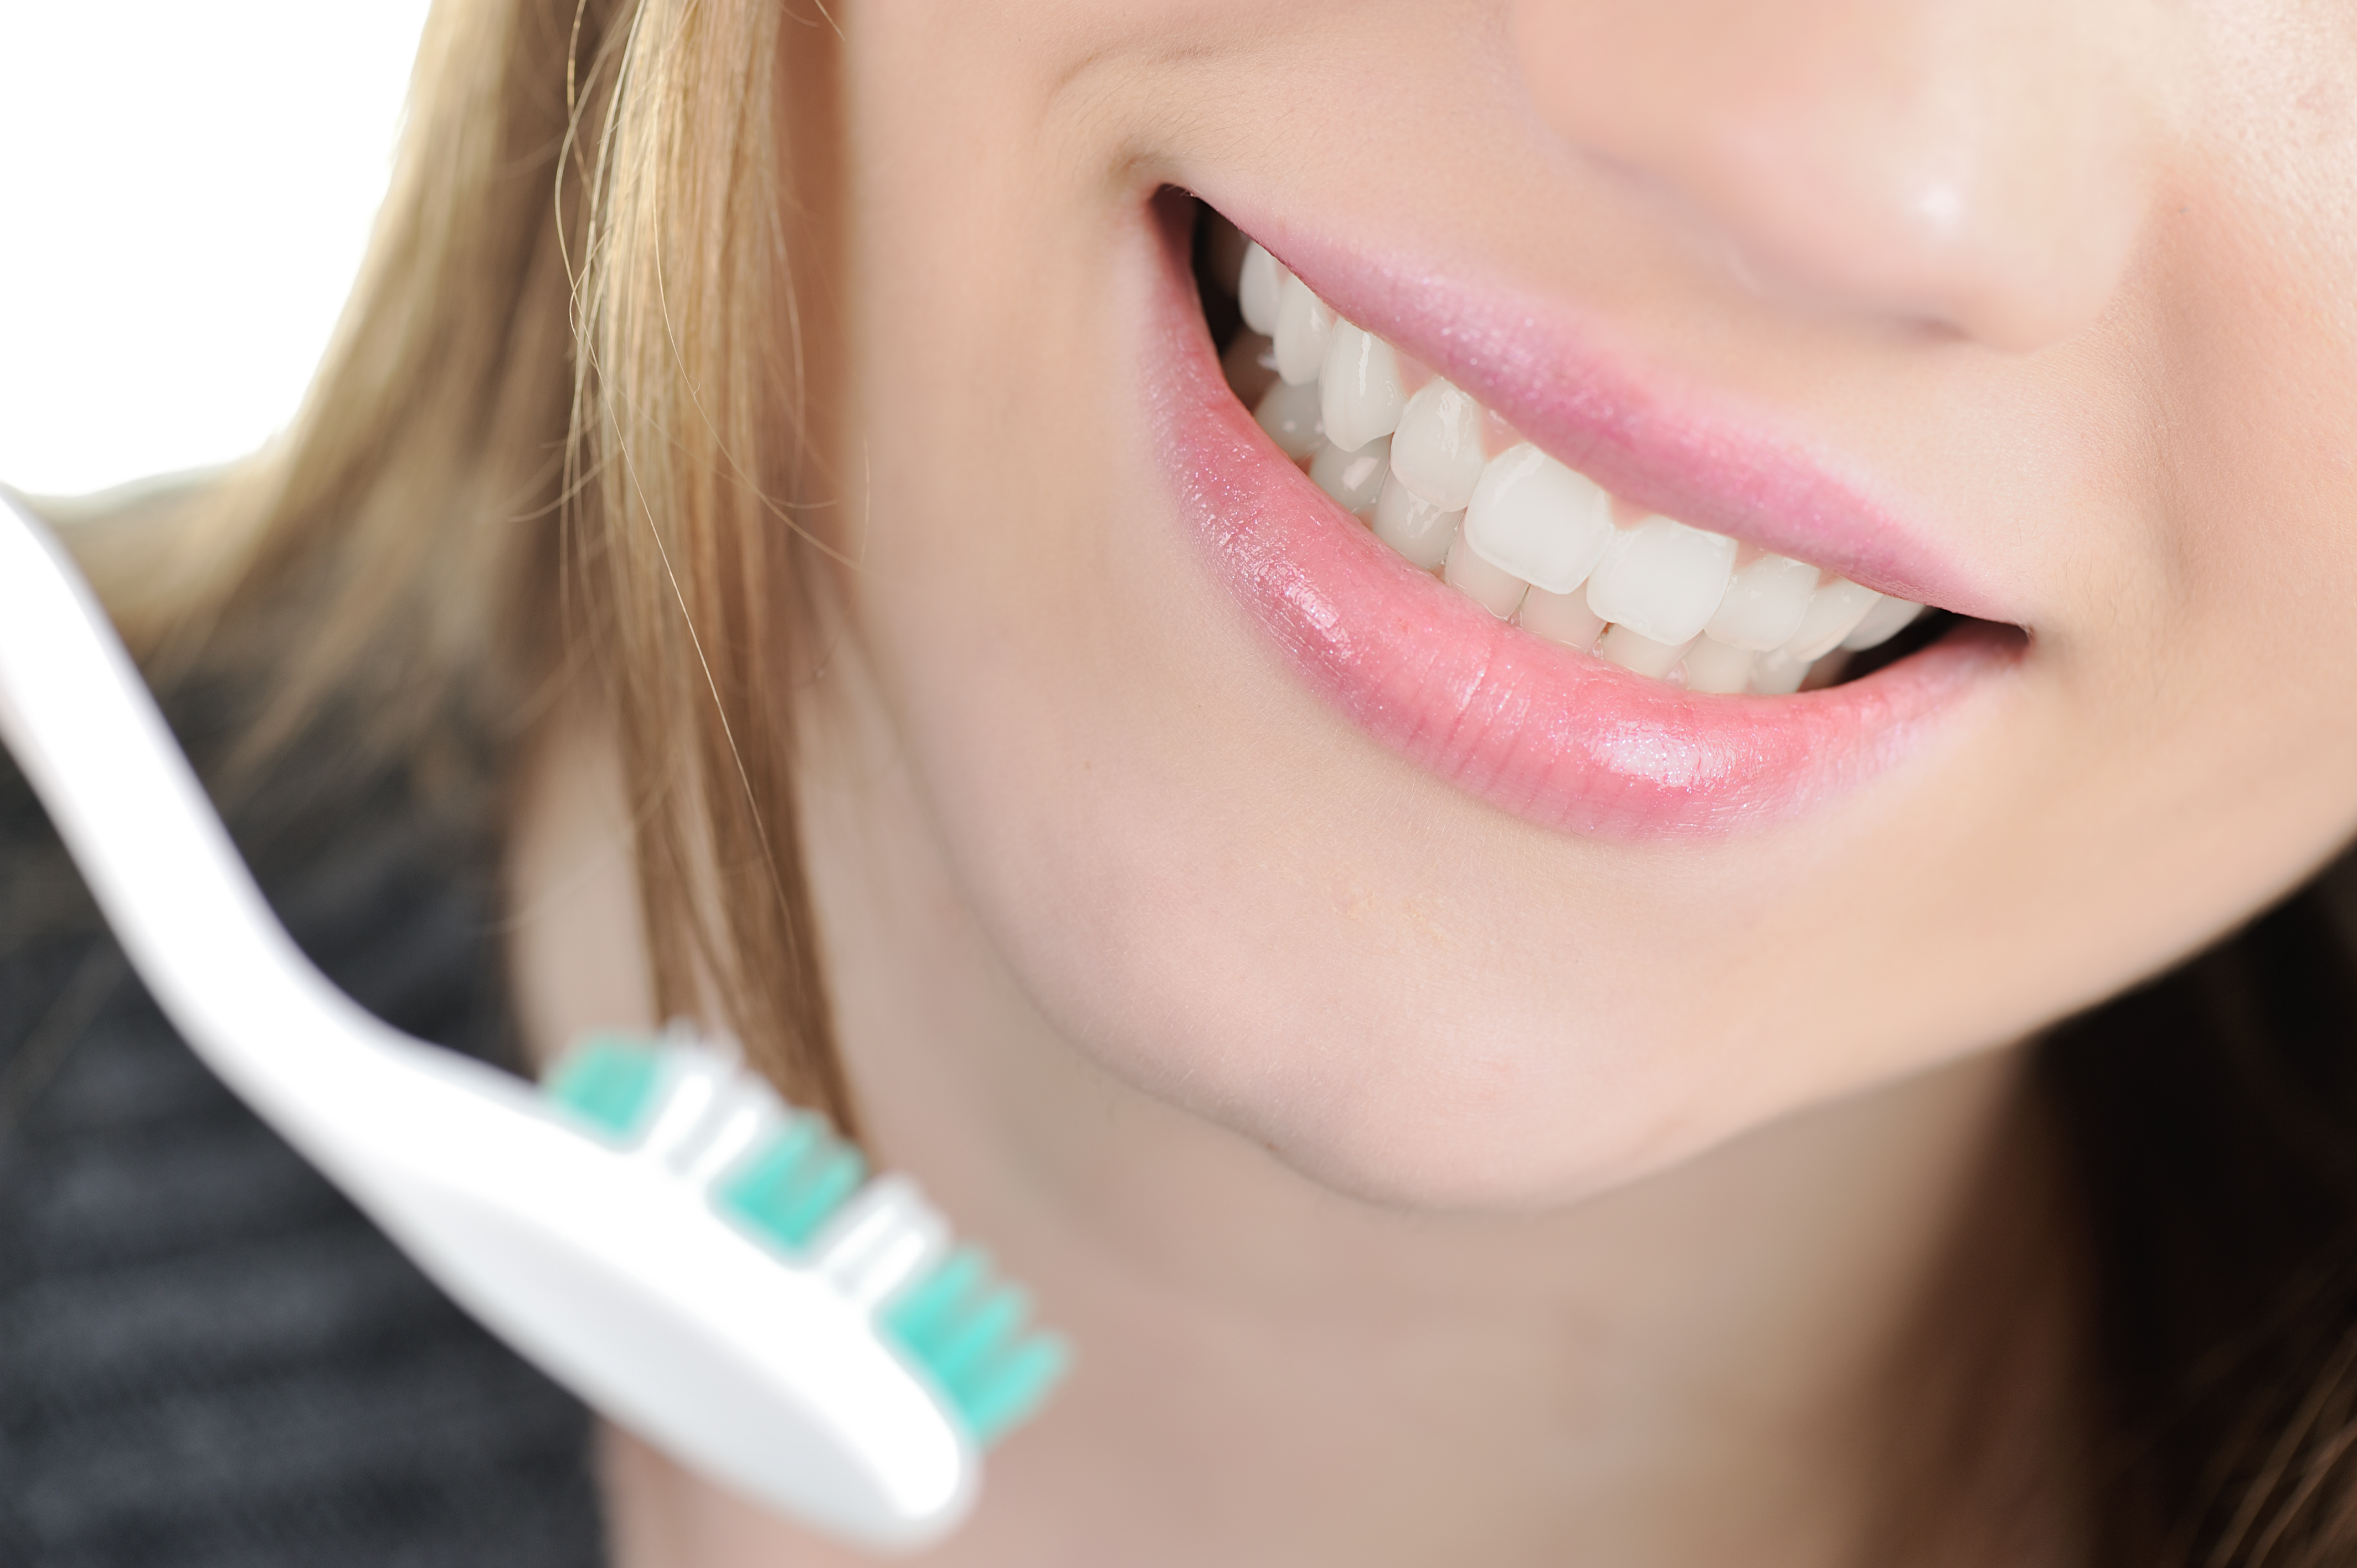 brushing can help clean your teeth of stains